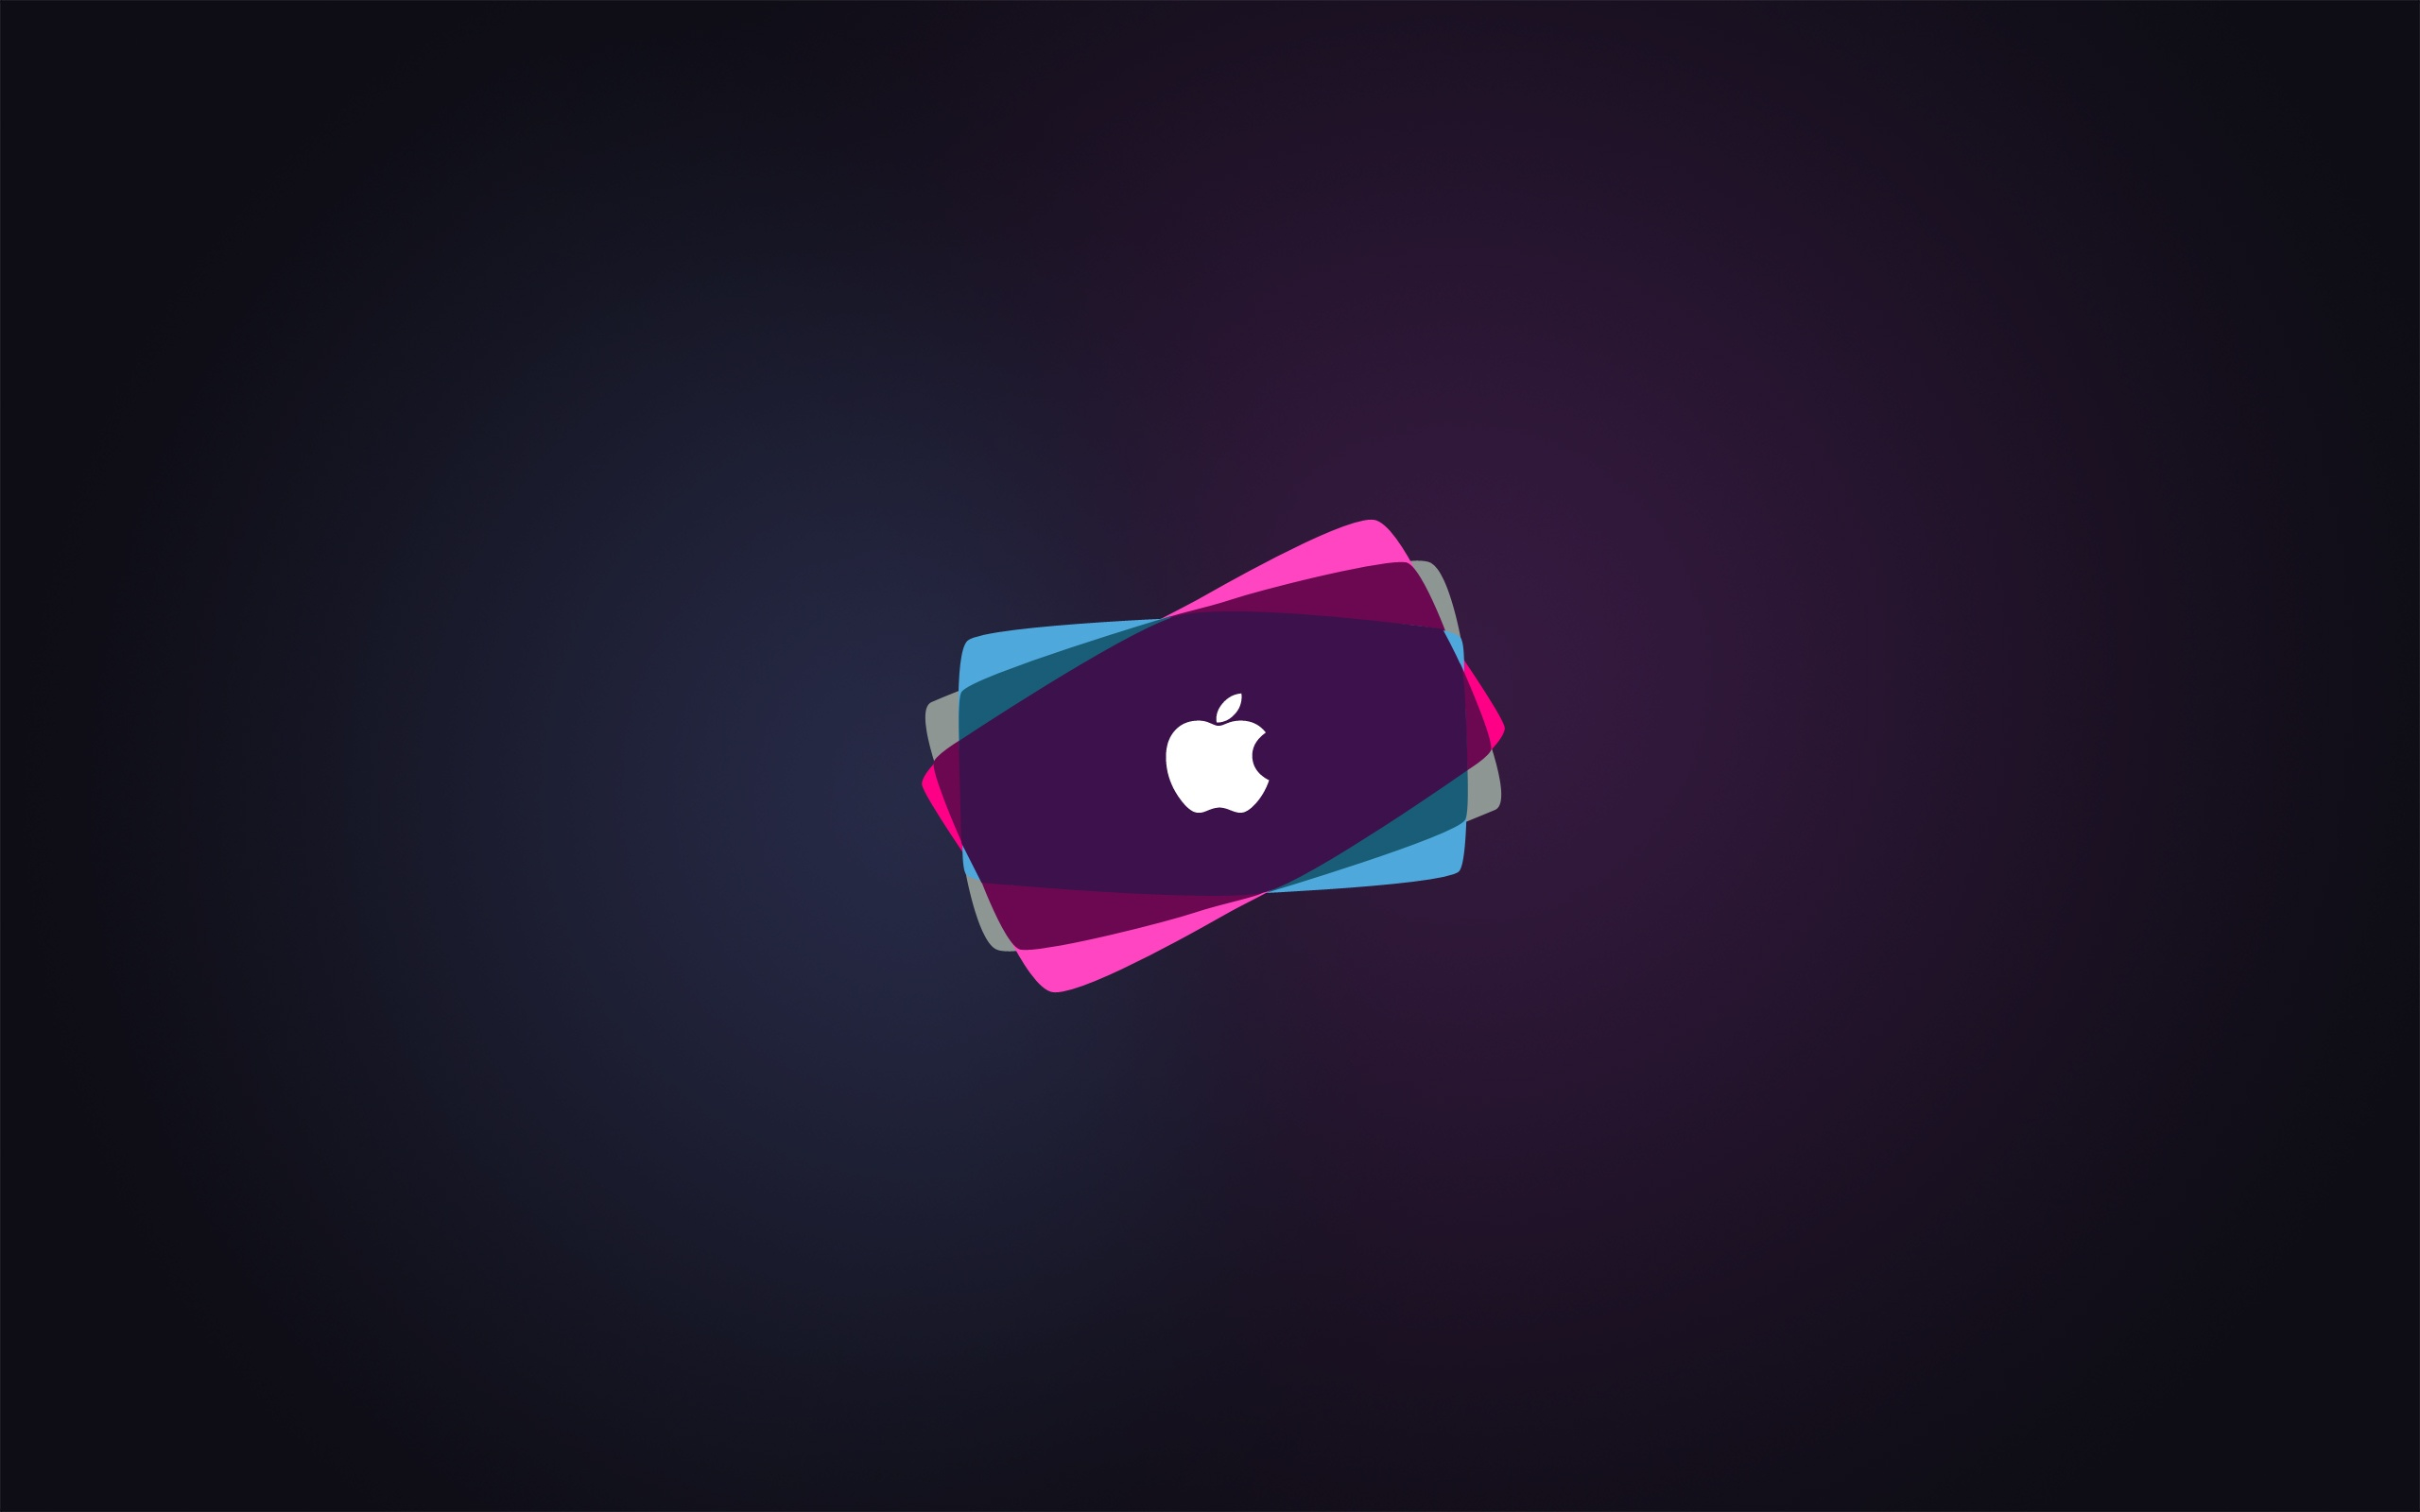 Mobile Apple Wallpapers